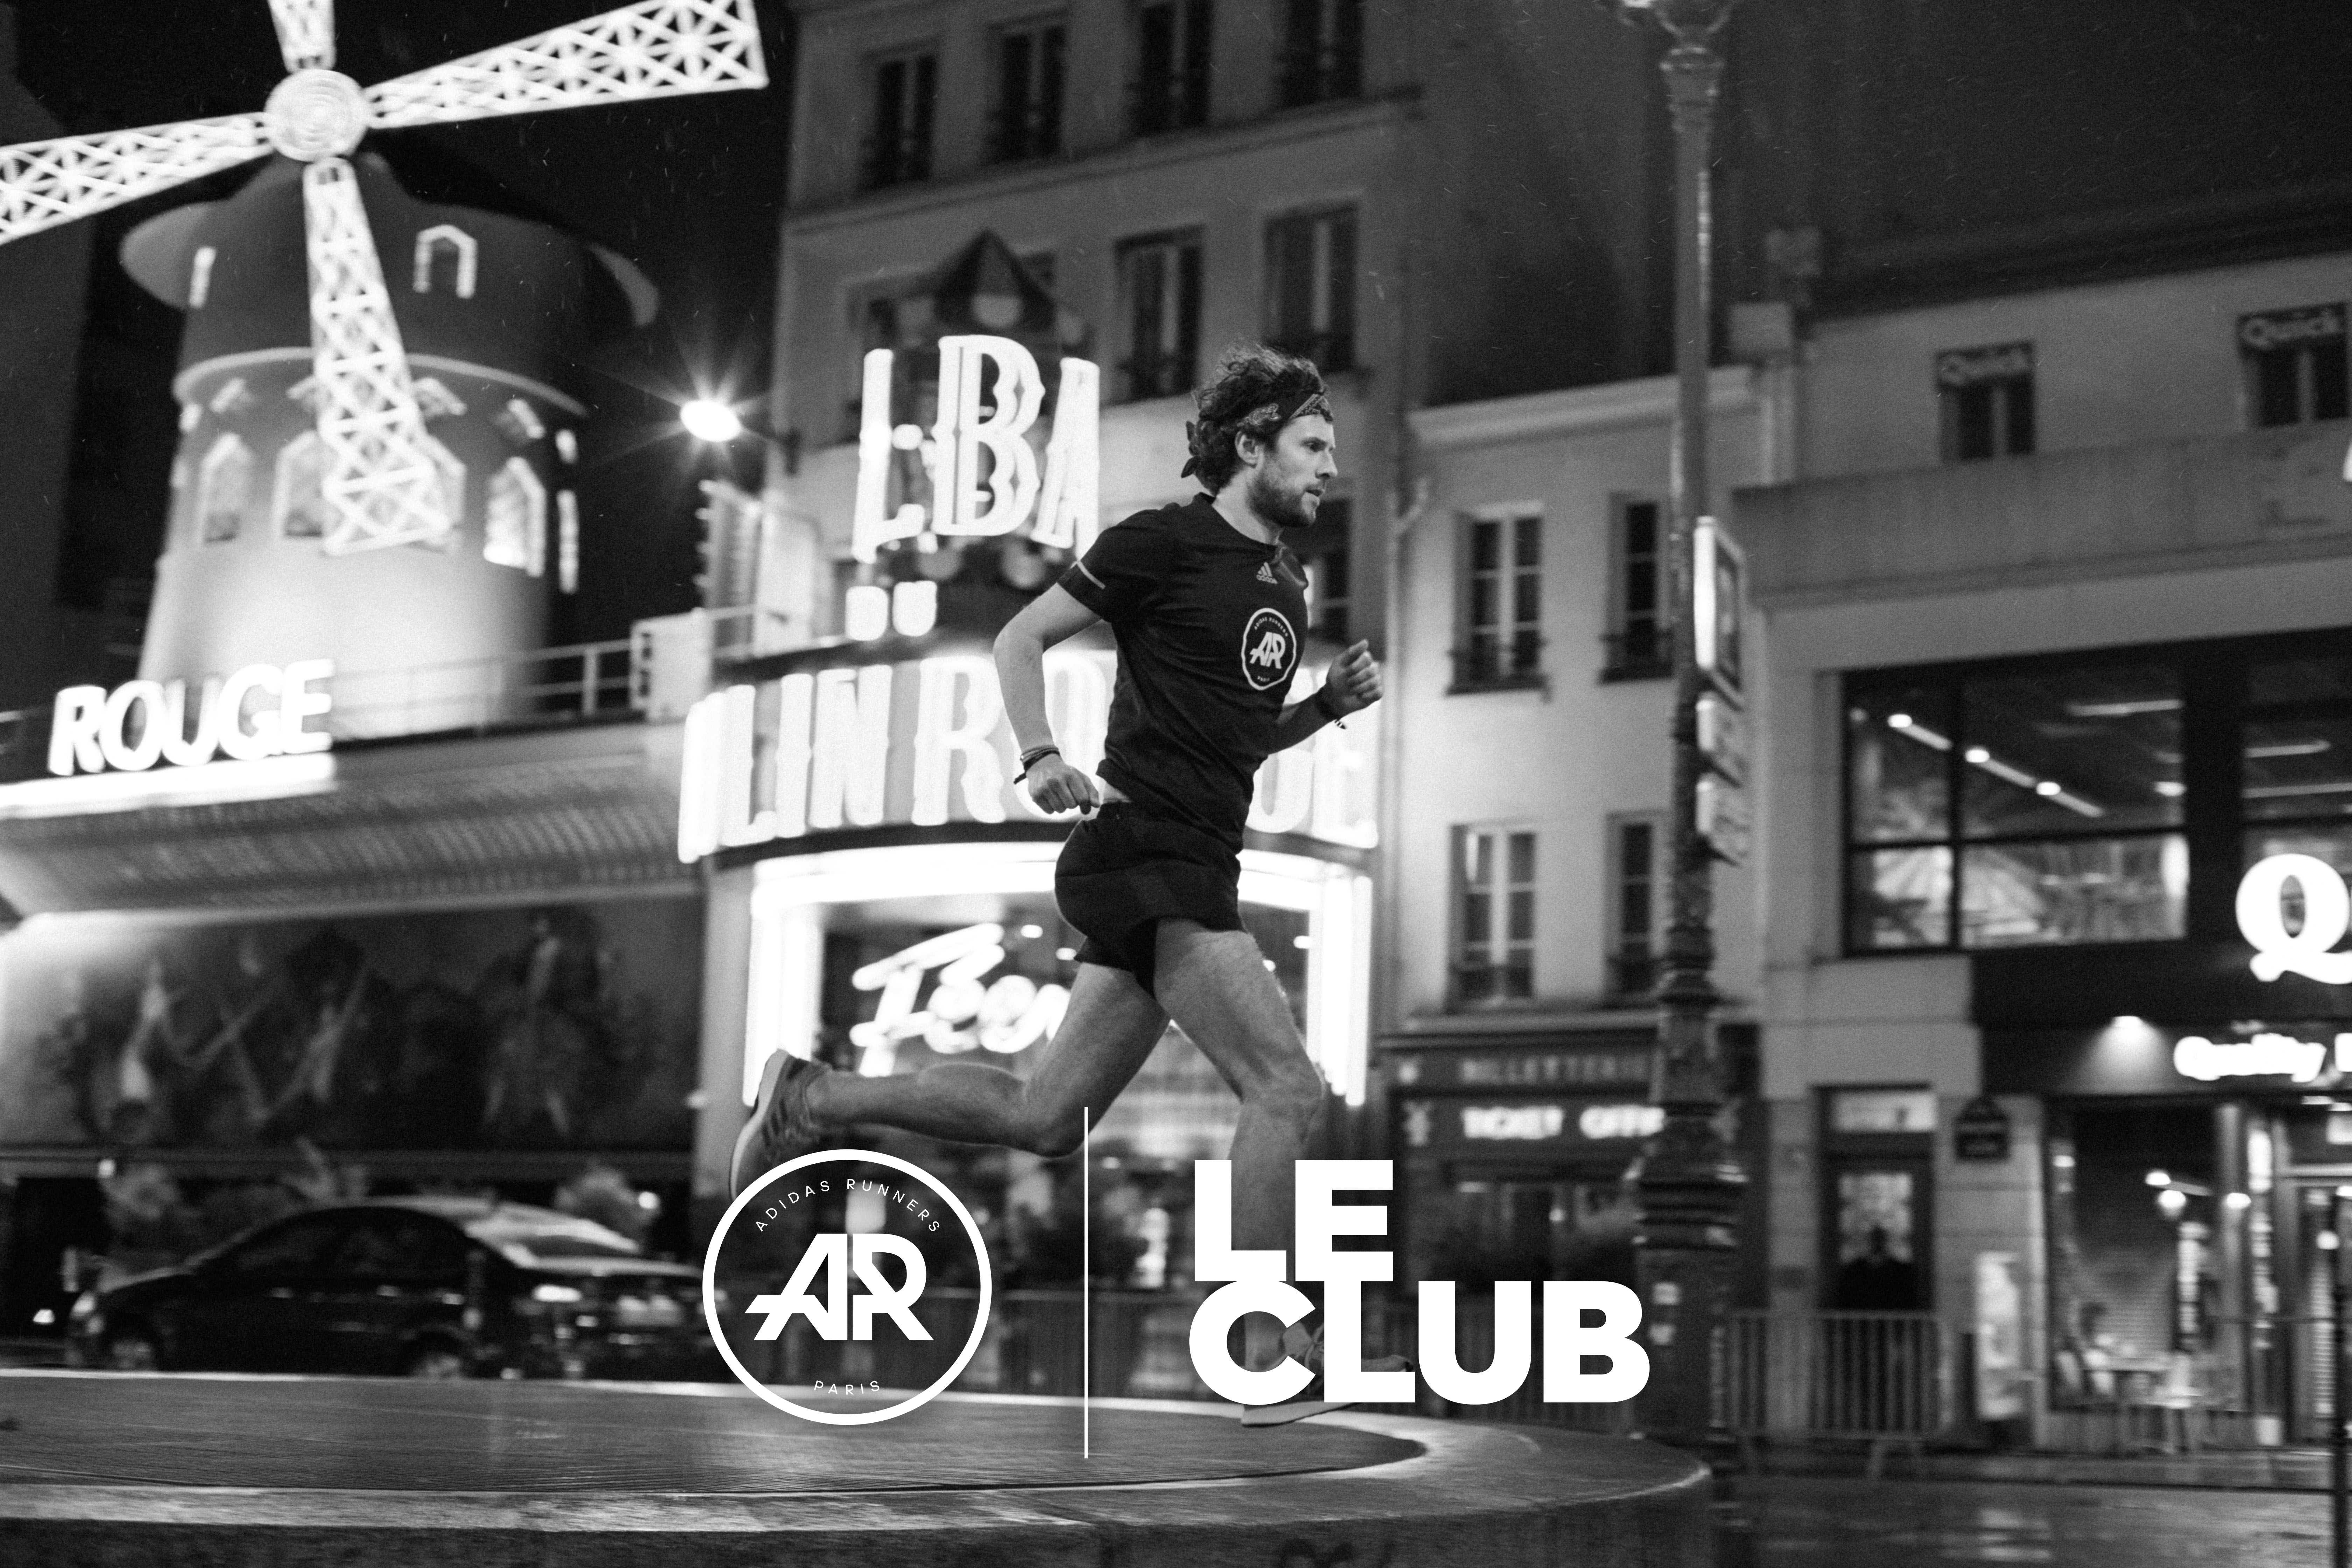 adidas Runners paris Le Club